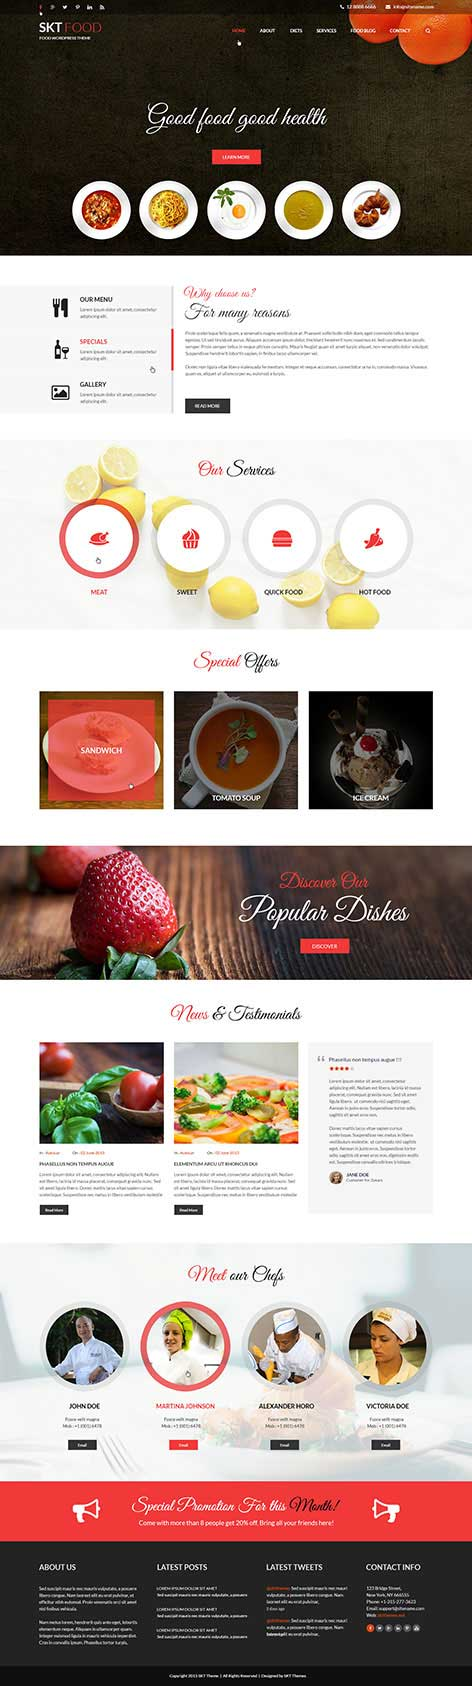 food and recipes WordPress theme